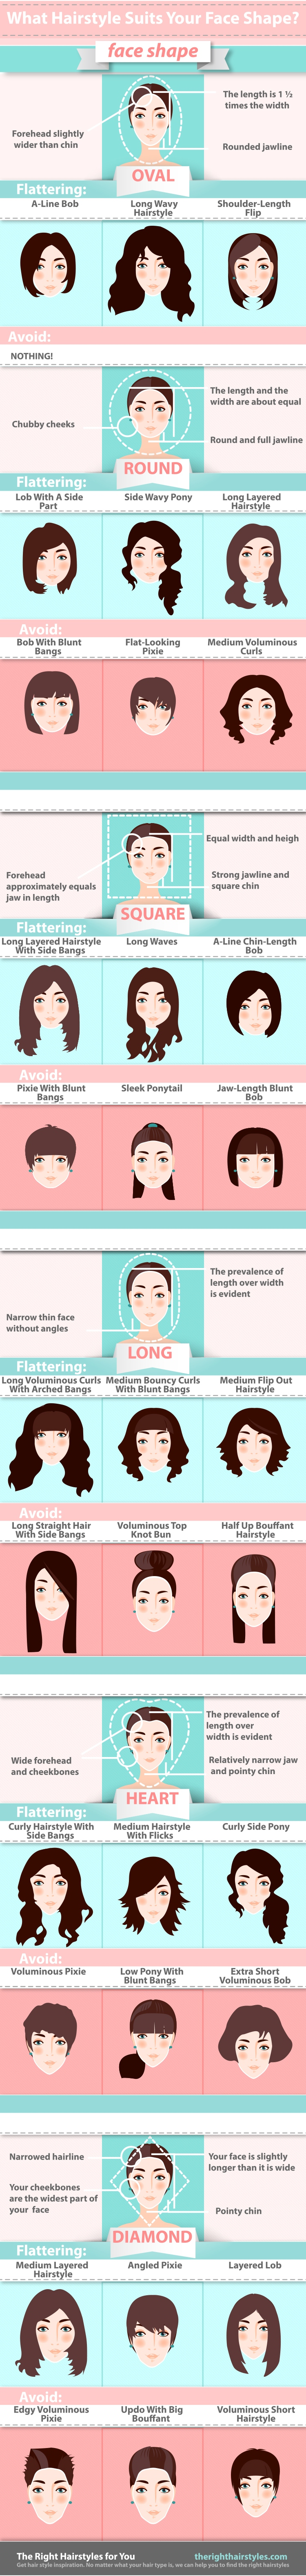 guide to the best hairstyles to suit your face shape - my hair care